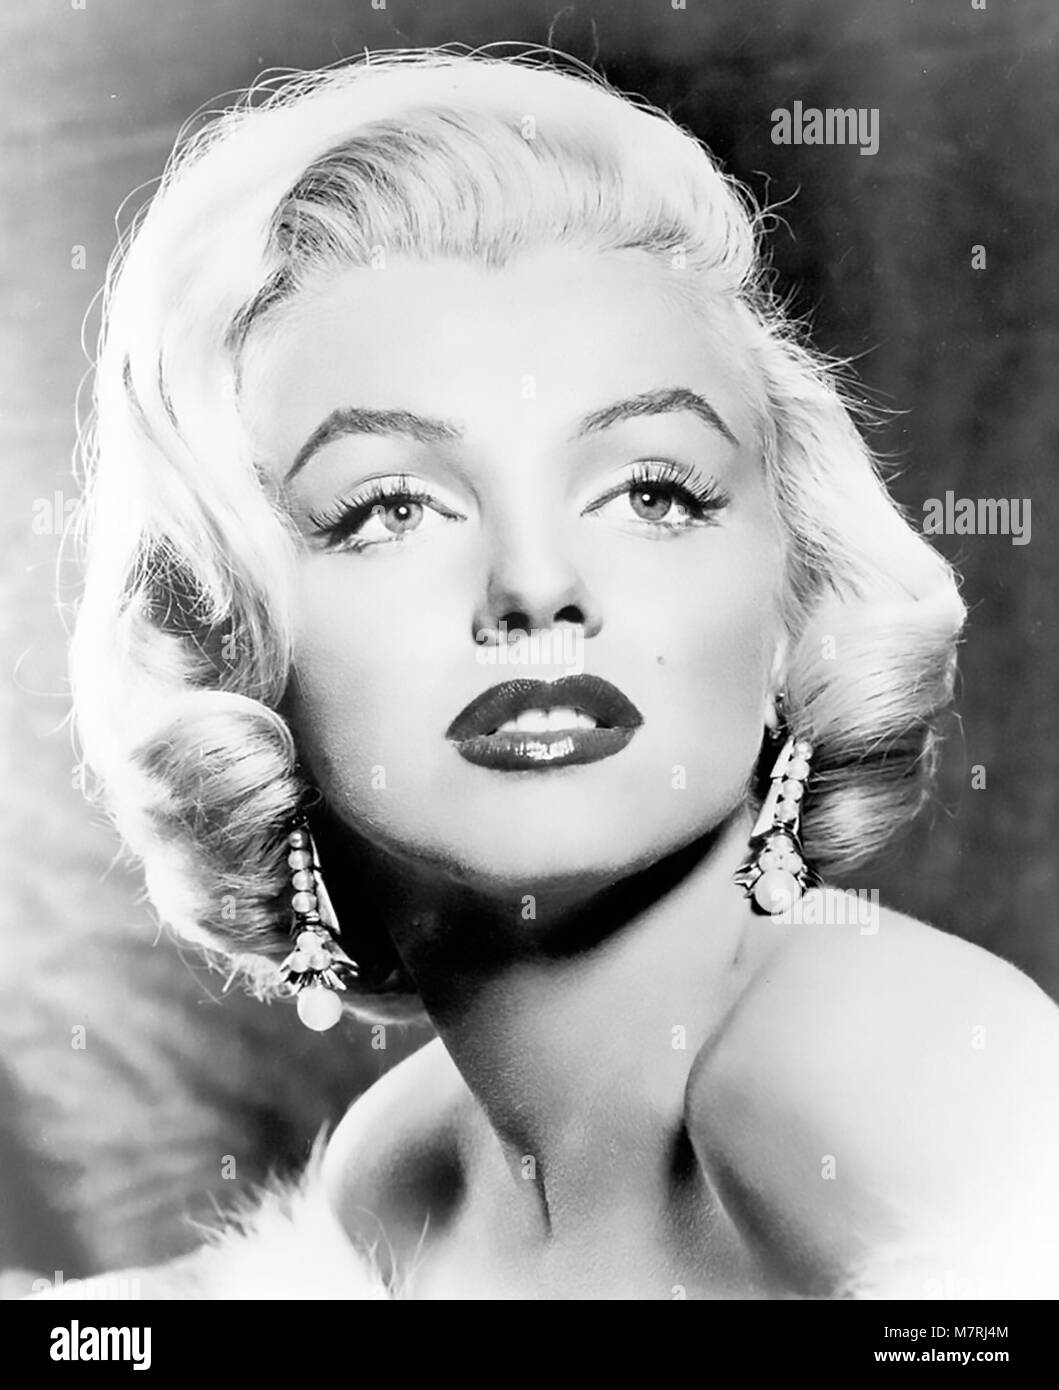 MARILYN MONROE (1926-1962) American film actress in 1953 while filming Gentlemen Prefer Blondes for 20th Century - Stock Image